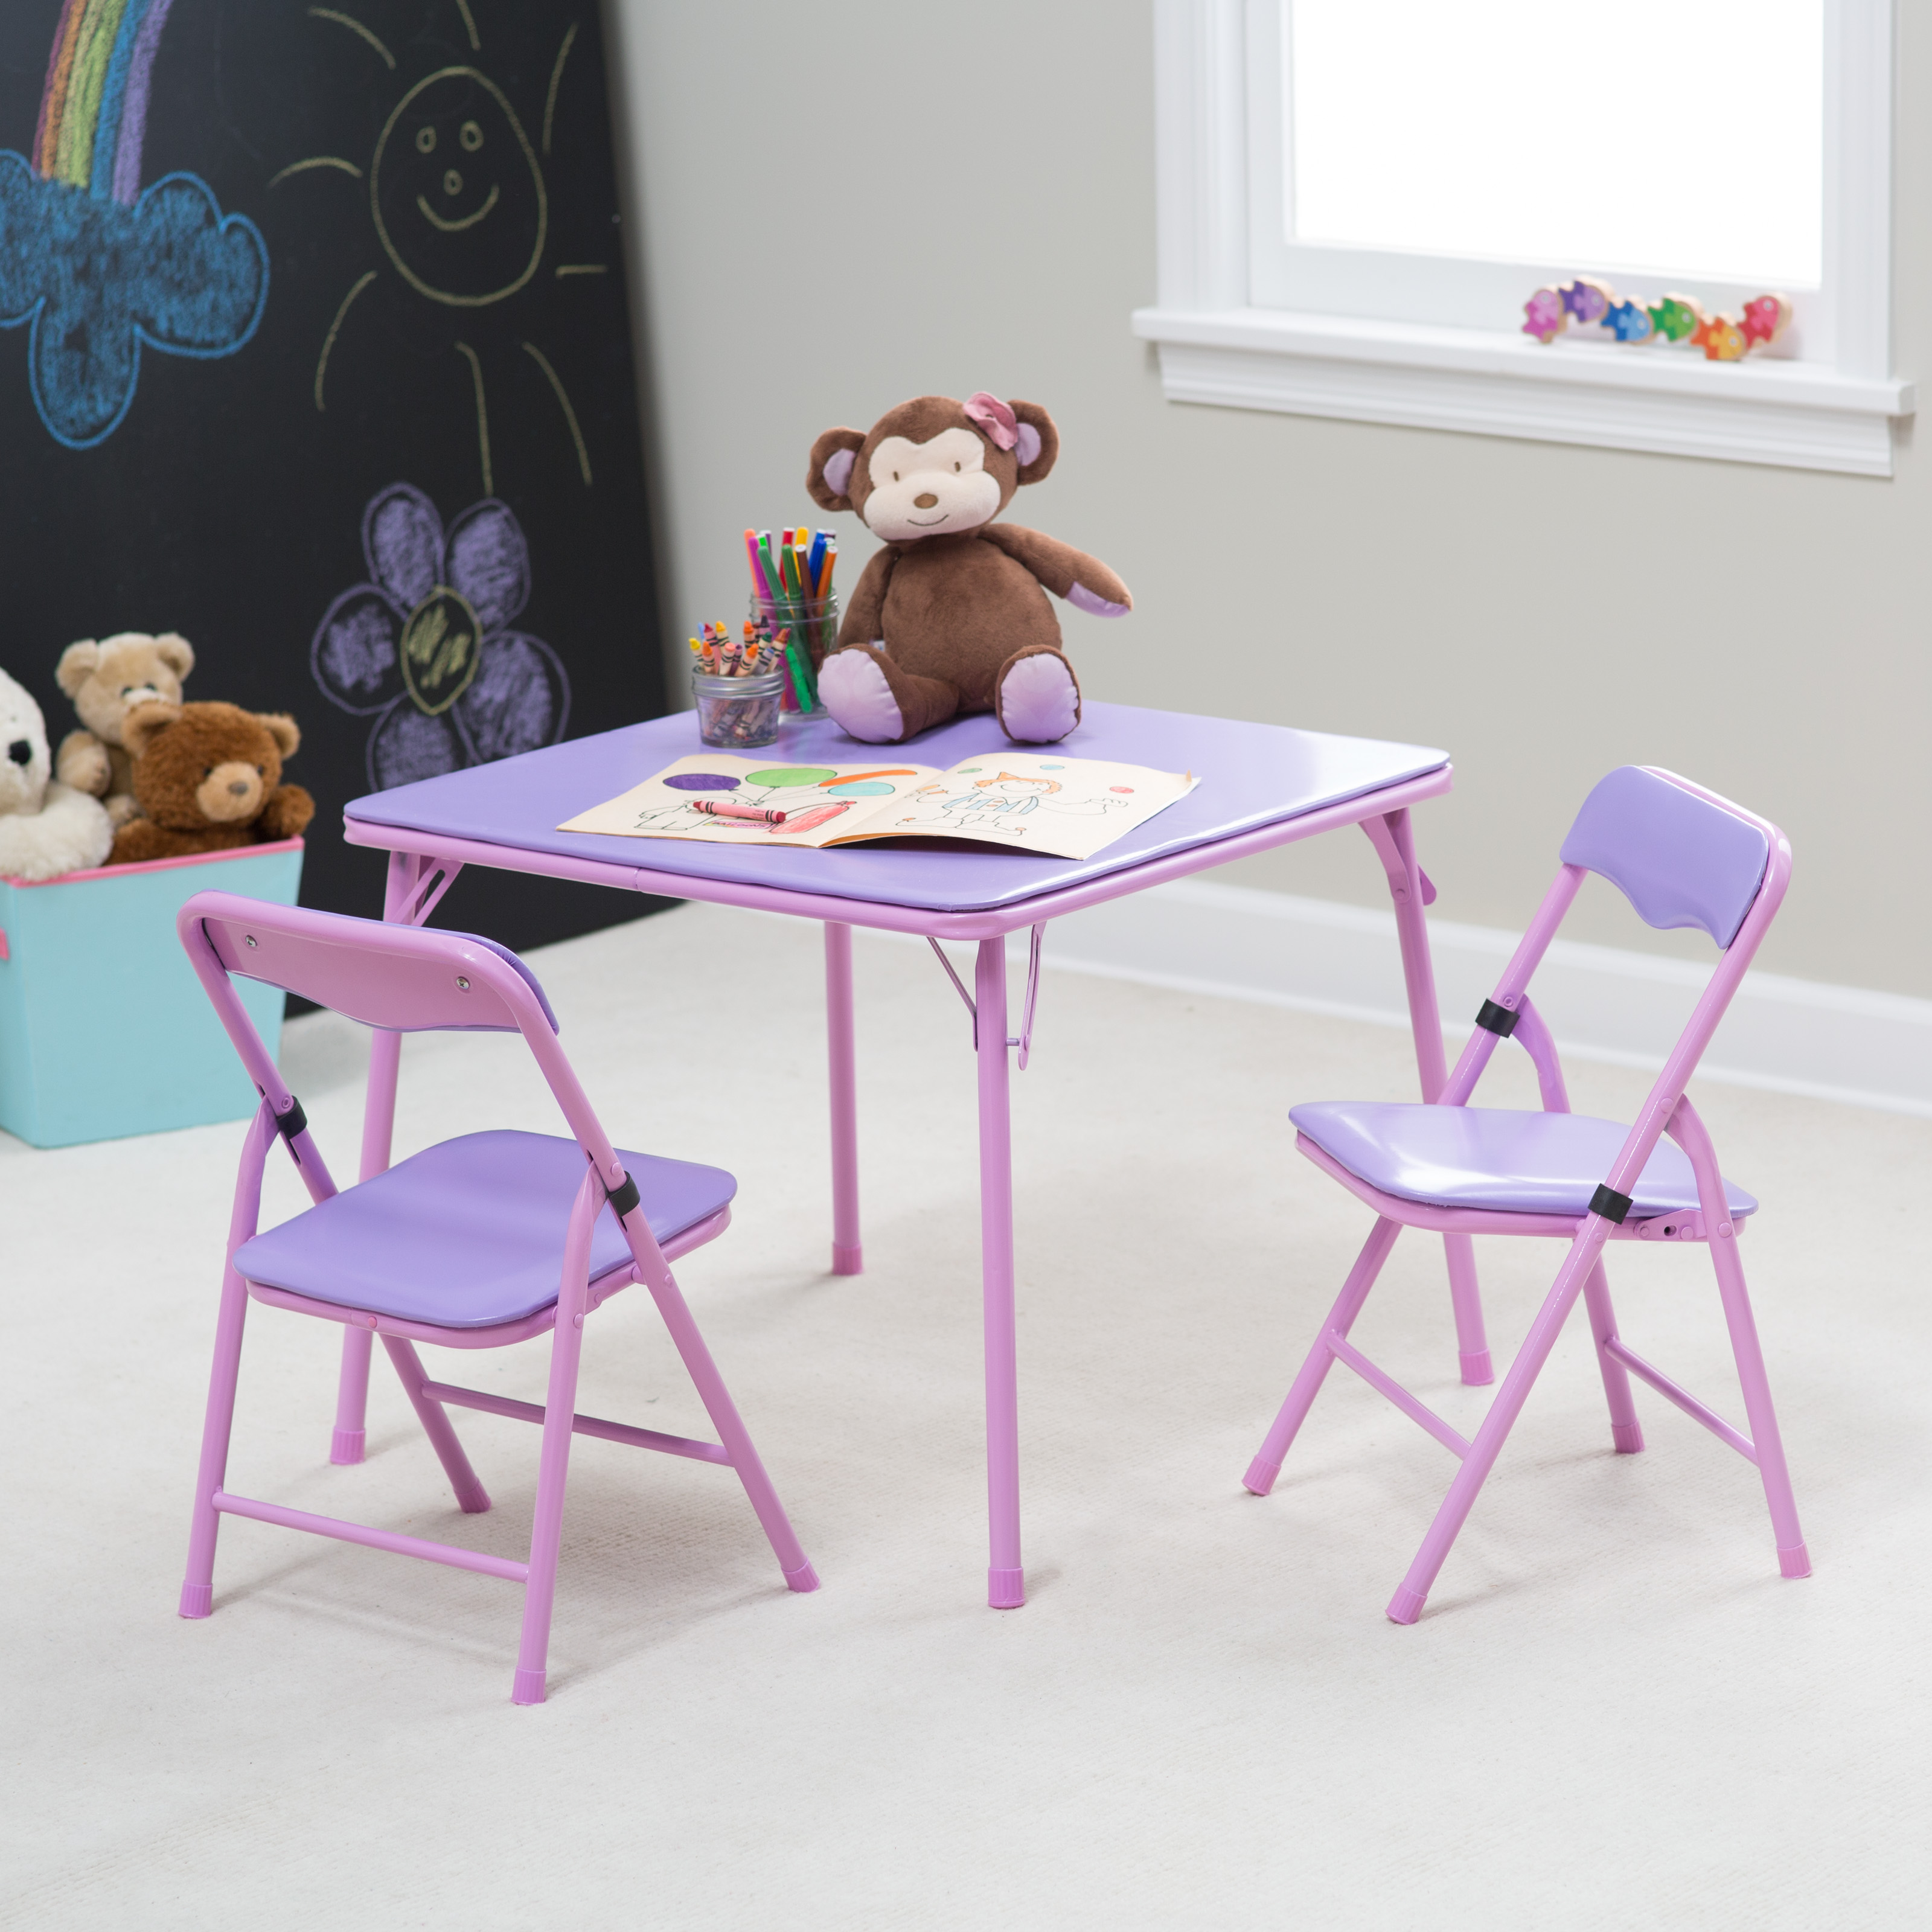 Showtime Childrens Folding Table and Chair Set | Hayneedle